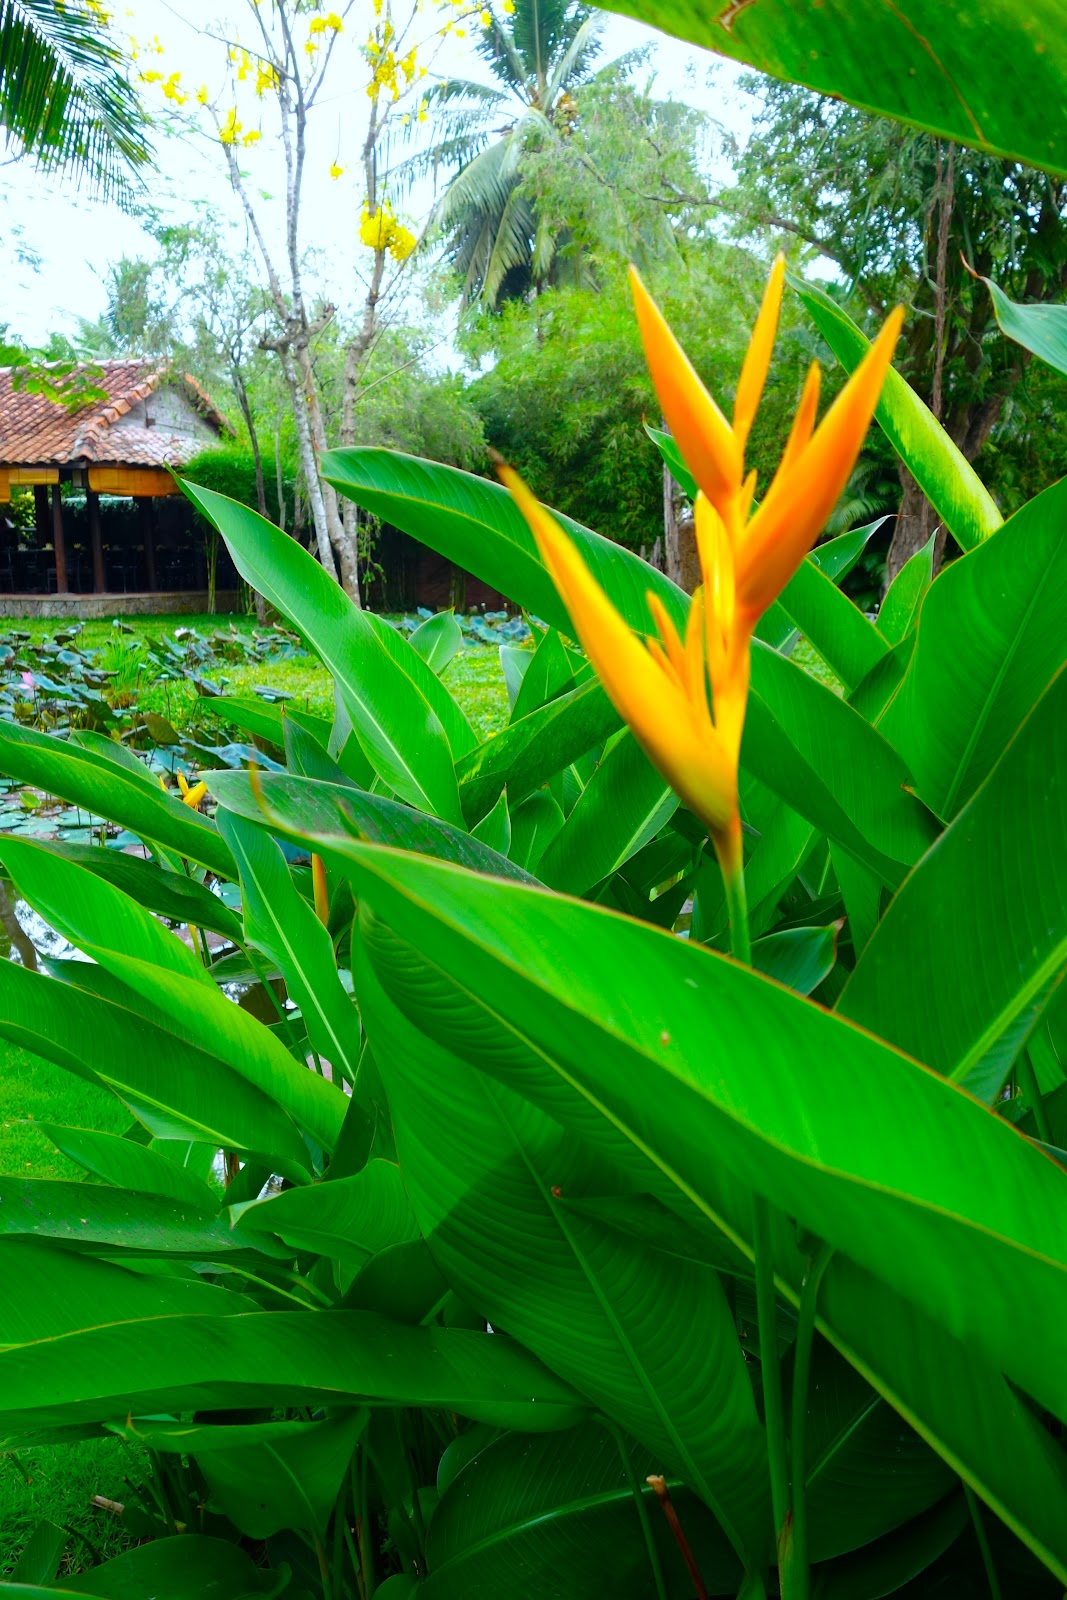 bird of paradise plants Vietnam 2015